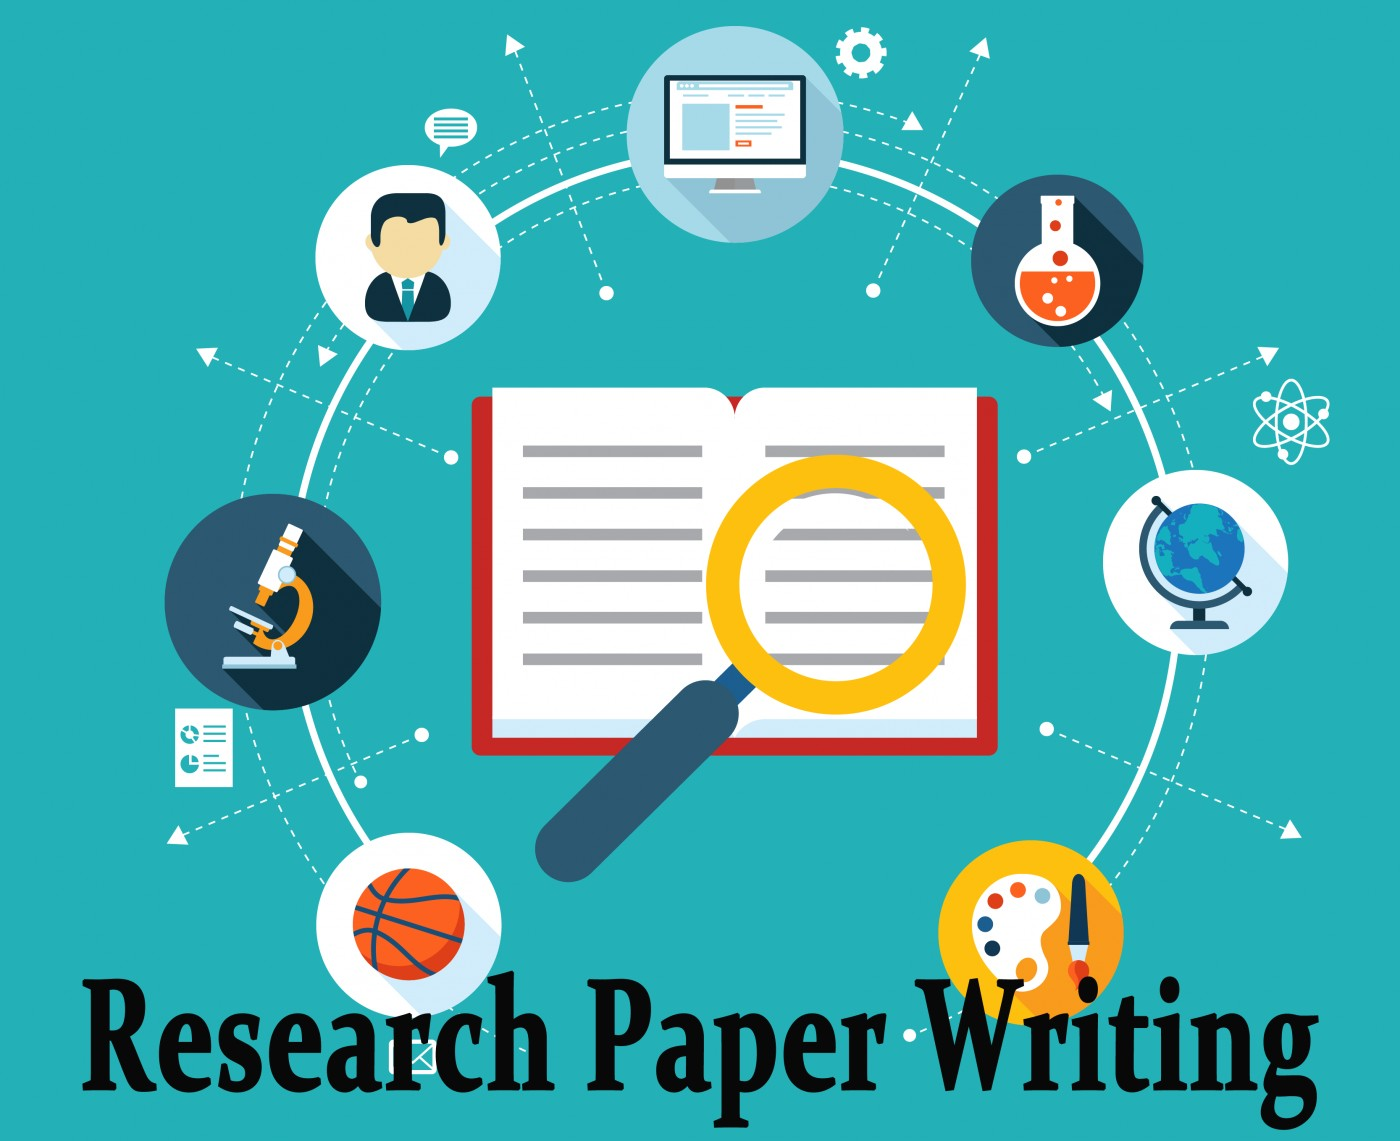 014 Write Researchs 503 Effective Research Writing Frightening Papers How To A History Paper Introduction Fast Youtube For Money 1400